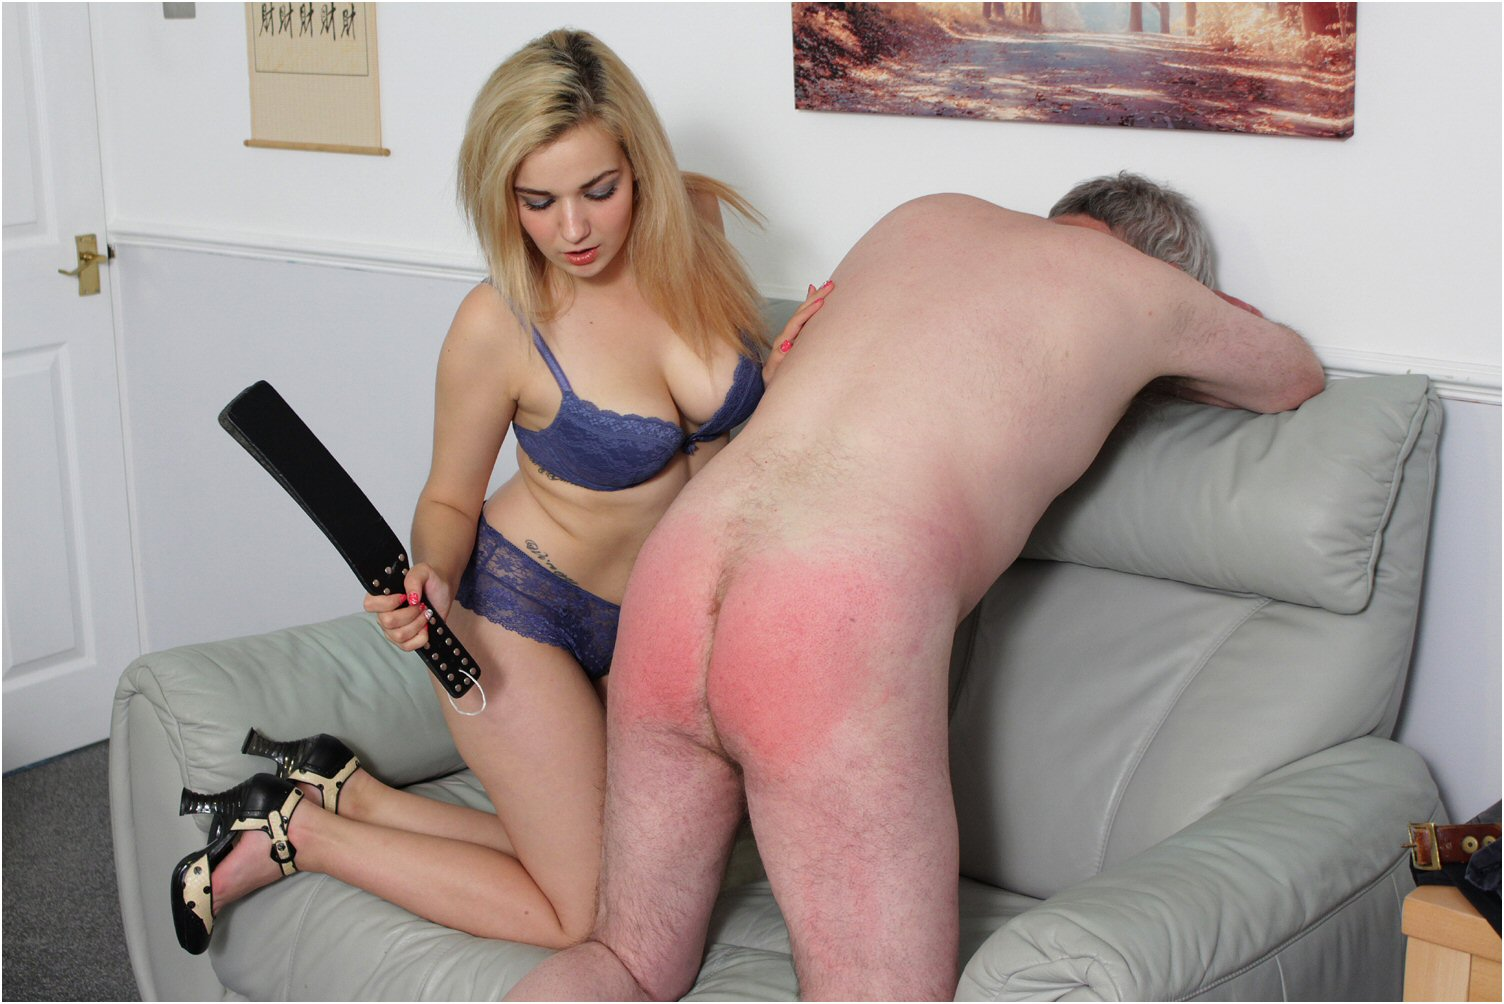 Women spanking men images